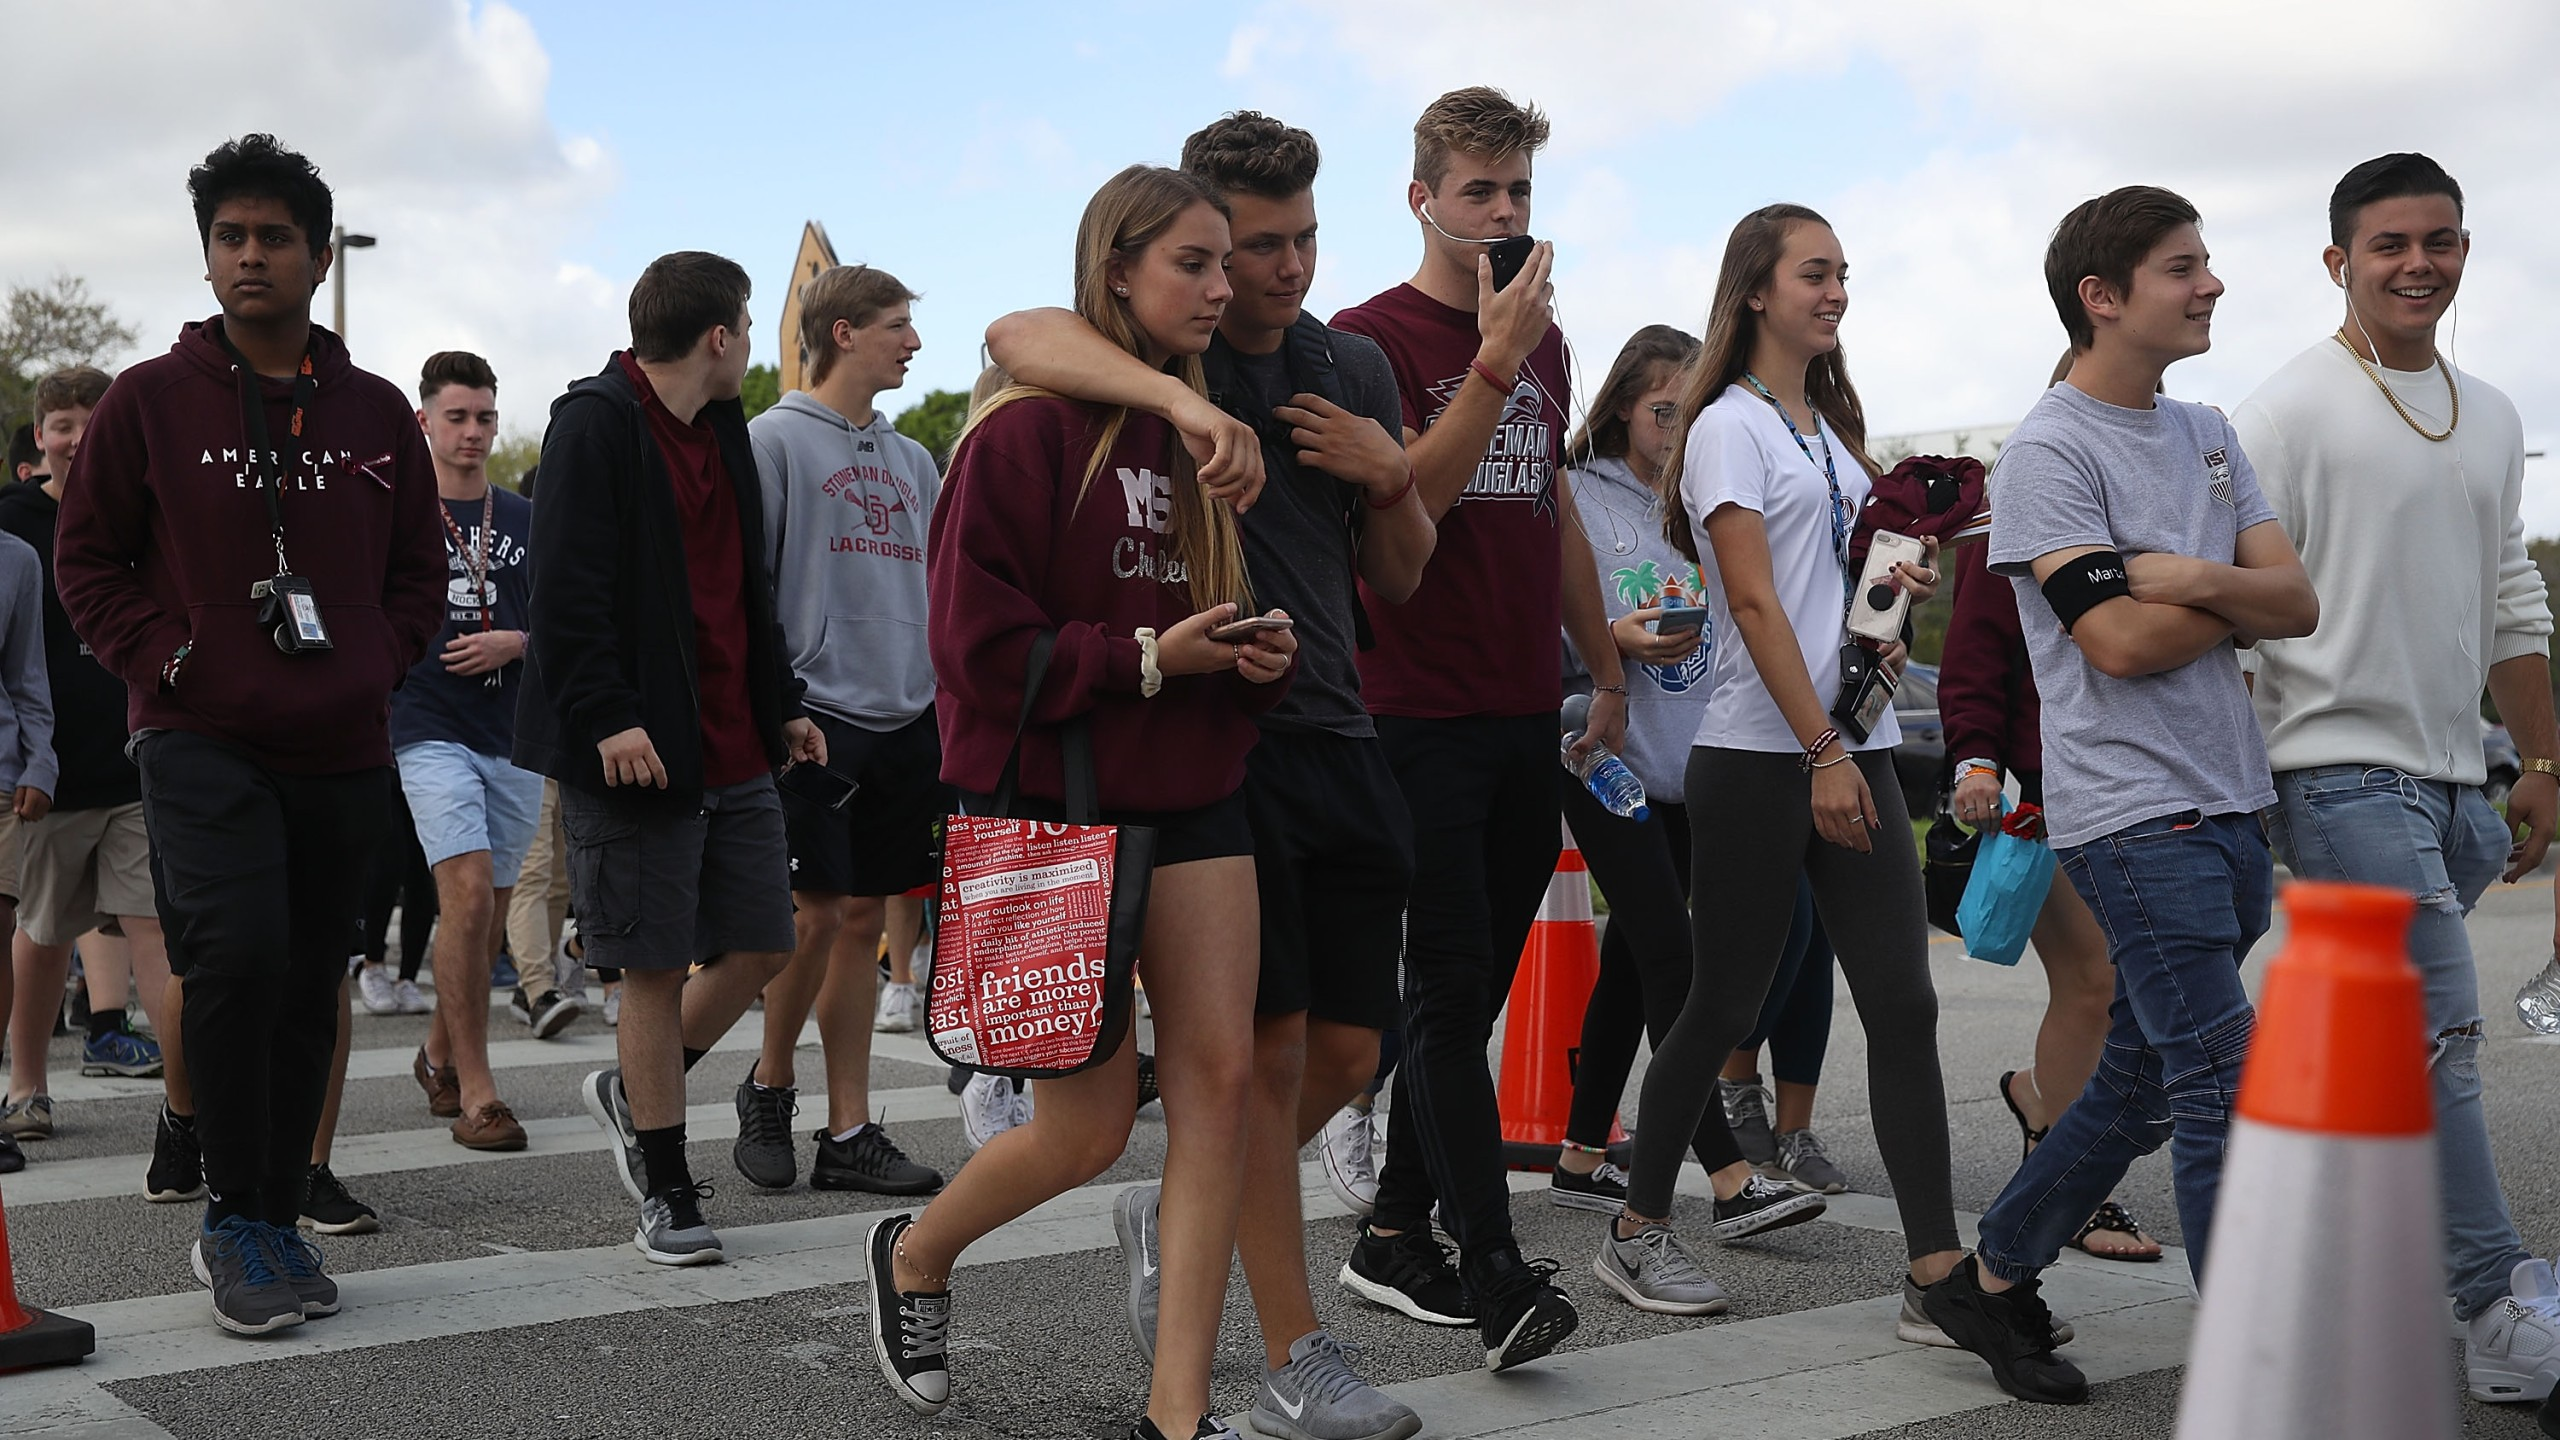 Students leave Marjory Stoneman Douglas High School after attending their classes for the first time since the shooting that killed 17 people at the school, Feb. 28, 2018, in Parkland, Florida. (Credit: Joe Raedle / Getty Images)